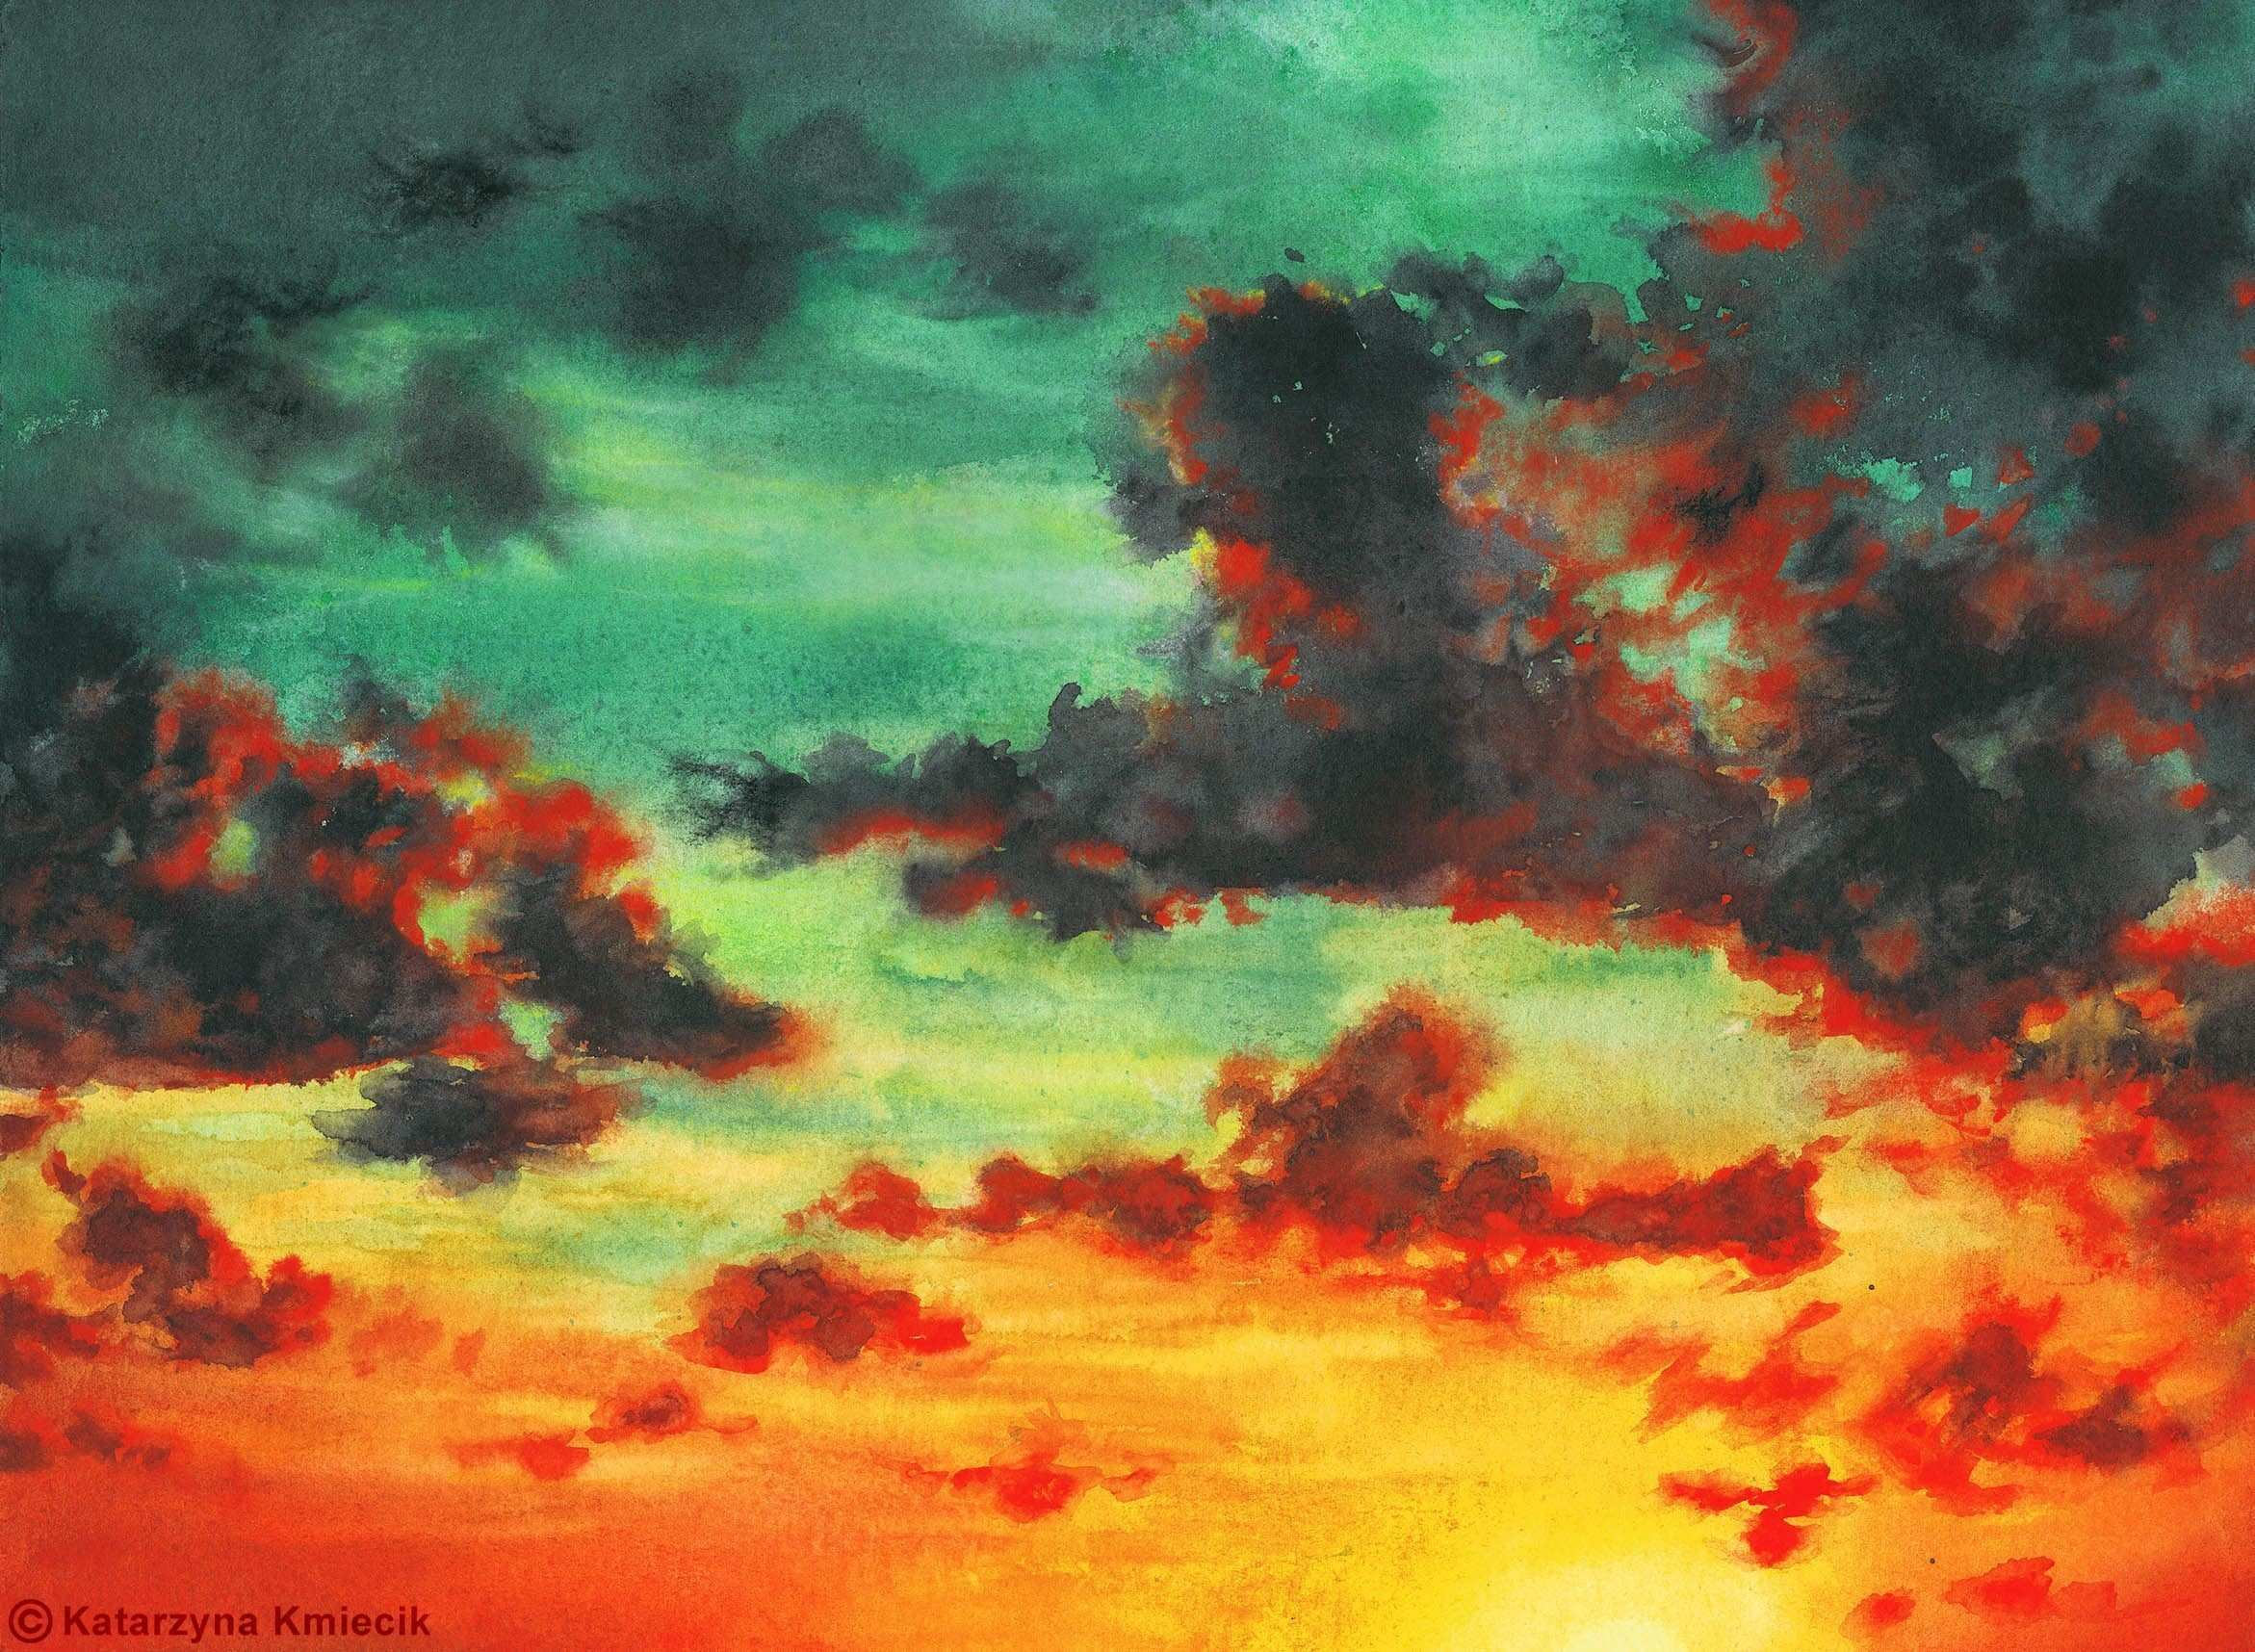 Vibrant watercolor painting of the colorful sunset sky titled Sky